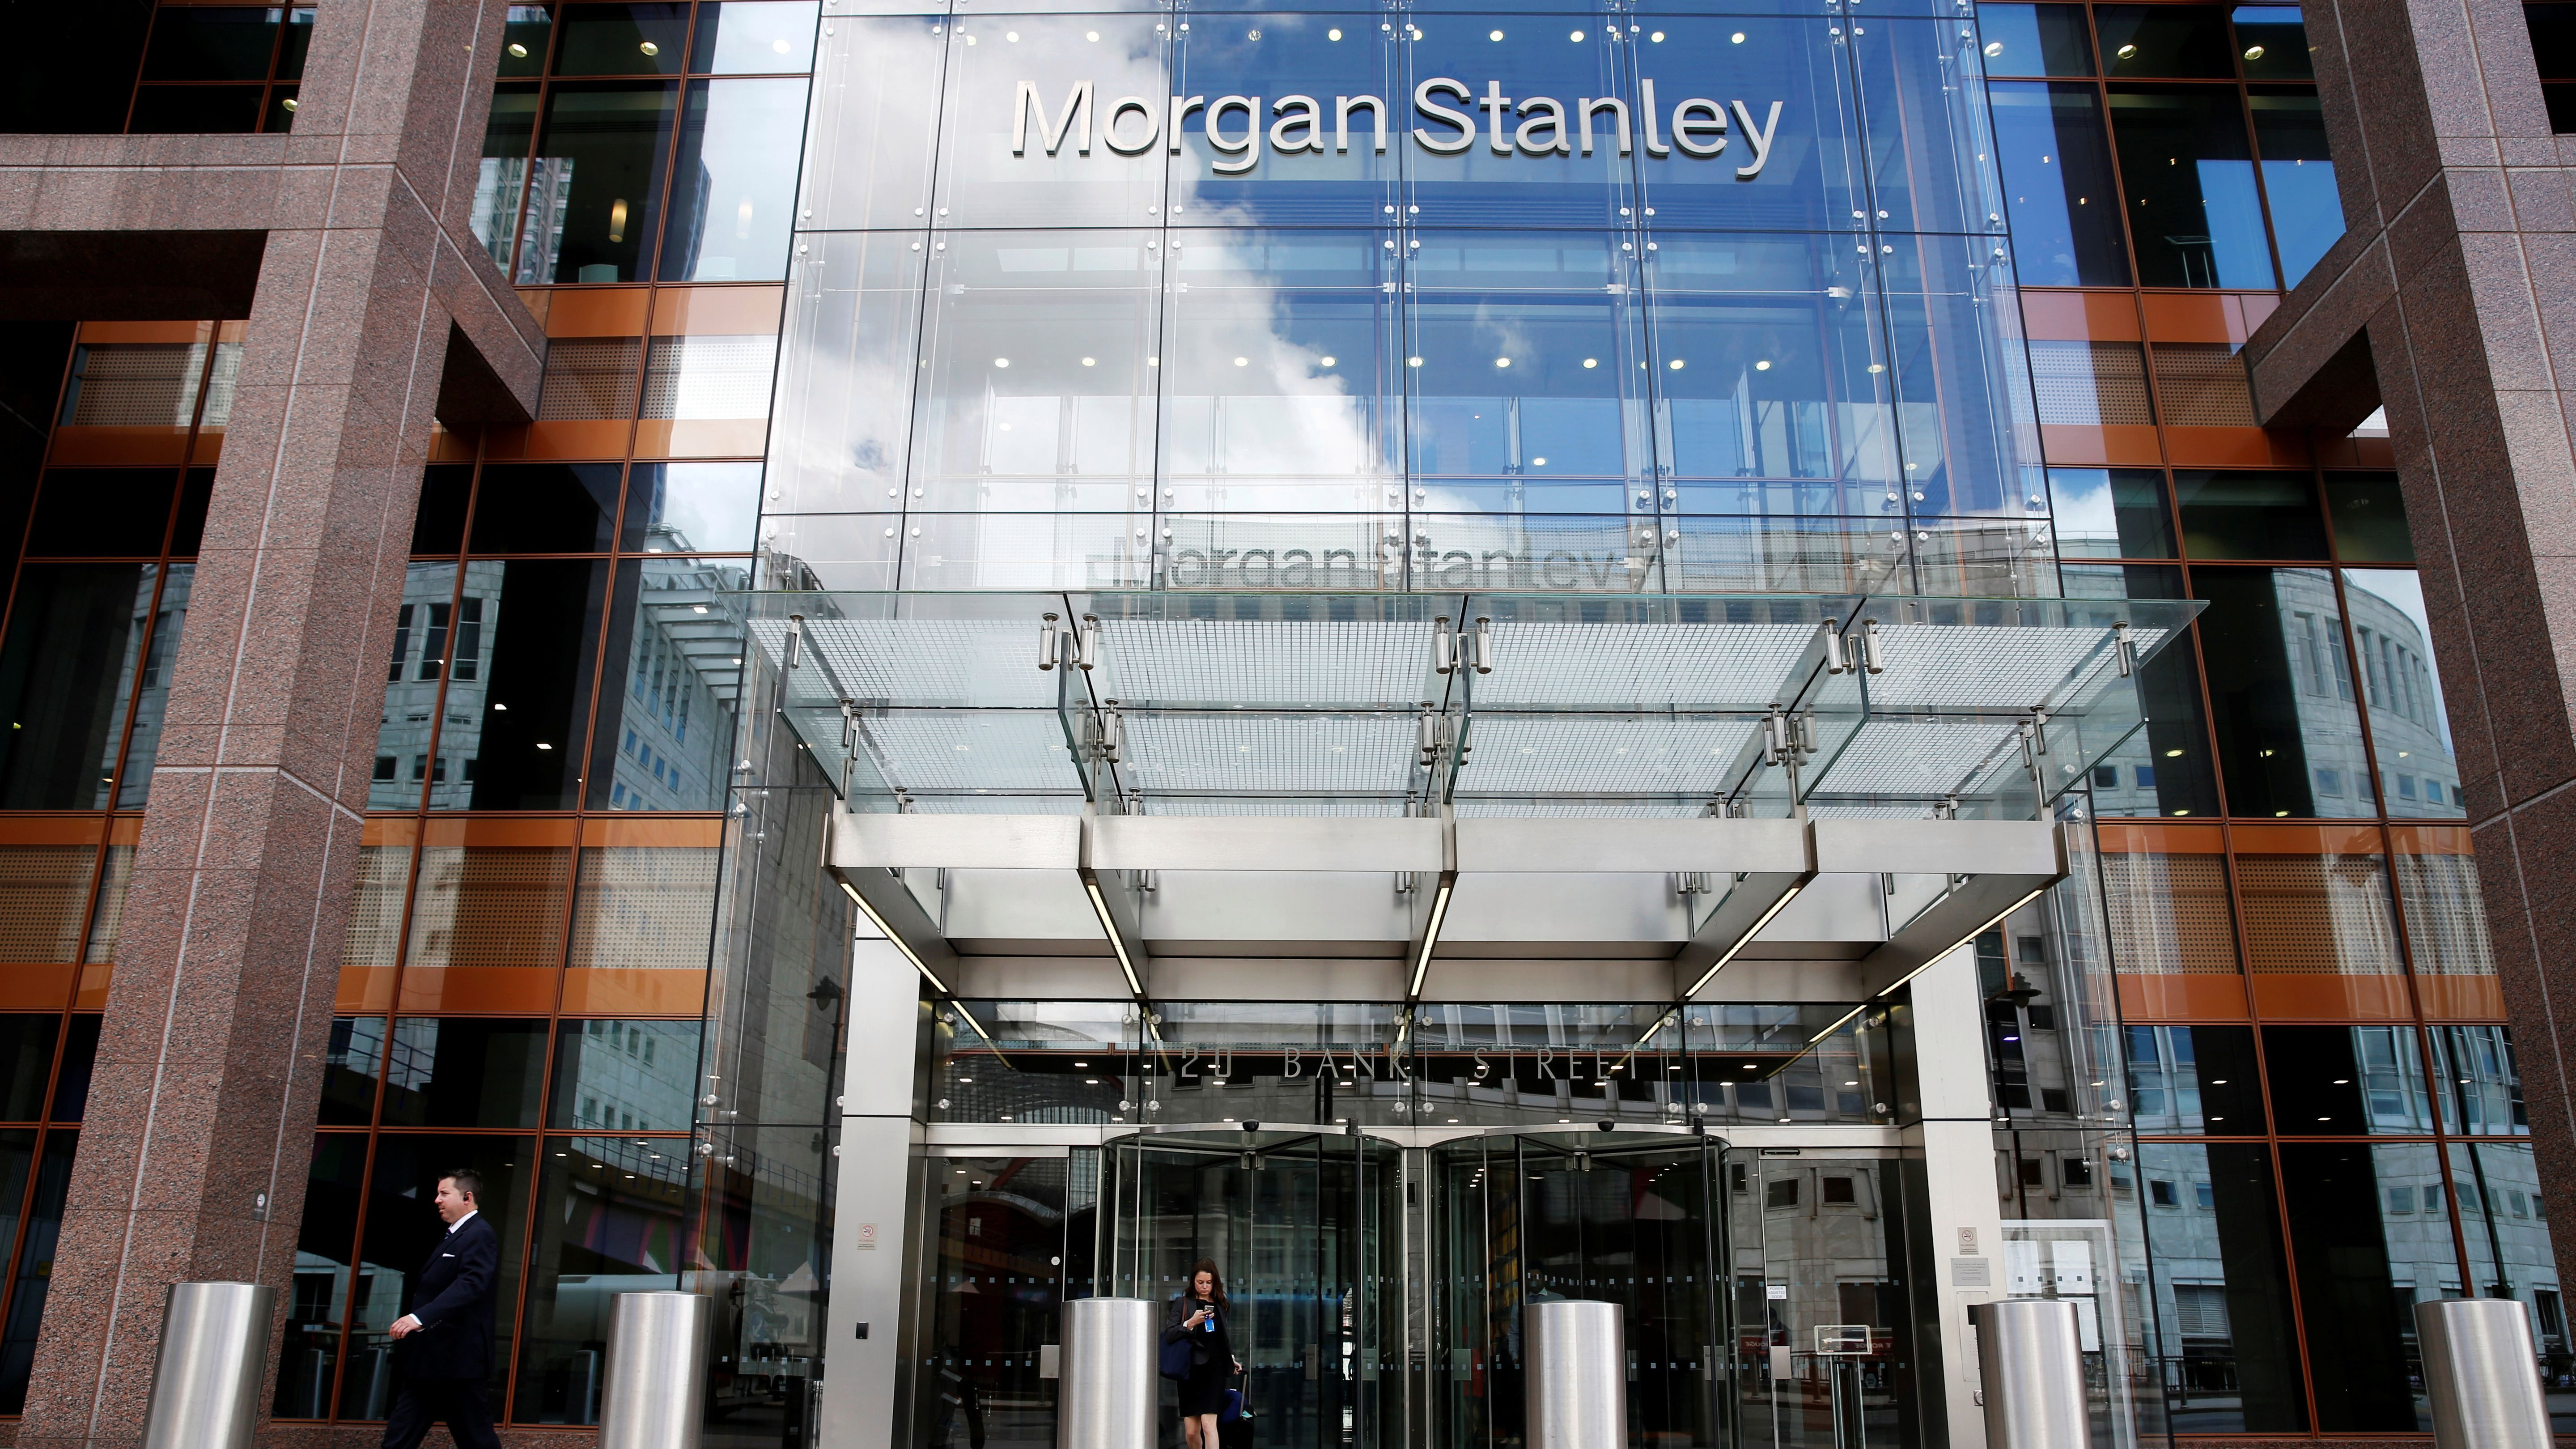 Morgan Stanley offices in London.